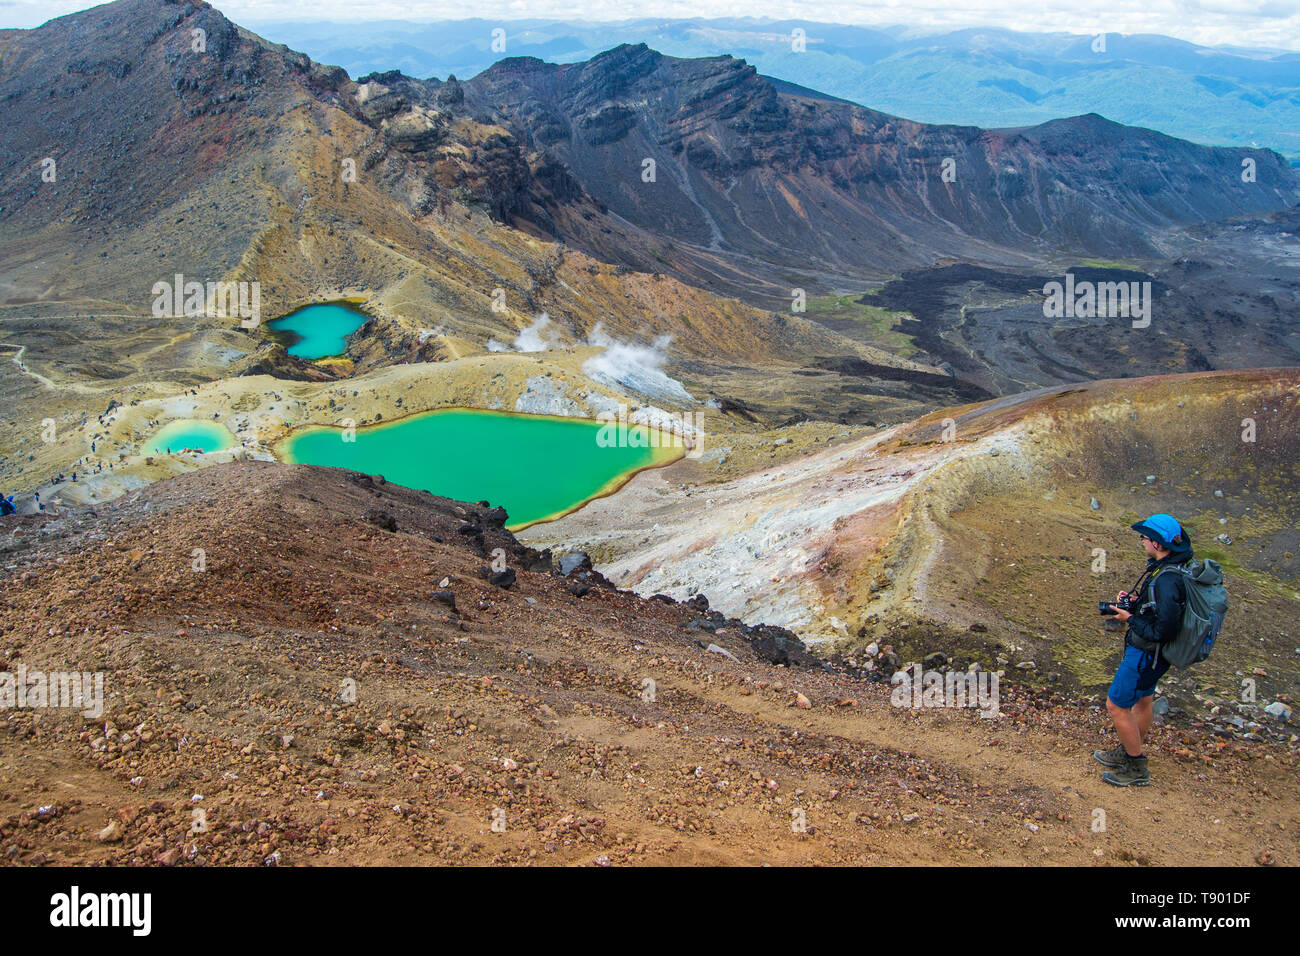 View of Emerald lakes from Tongariro Alpine Crossing hike with clouds above, North Island, New Zealand. - Stock Image